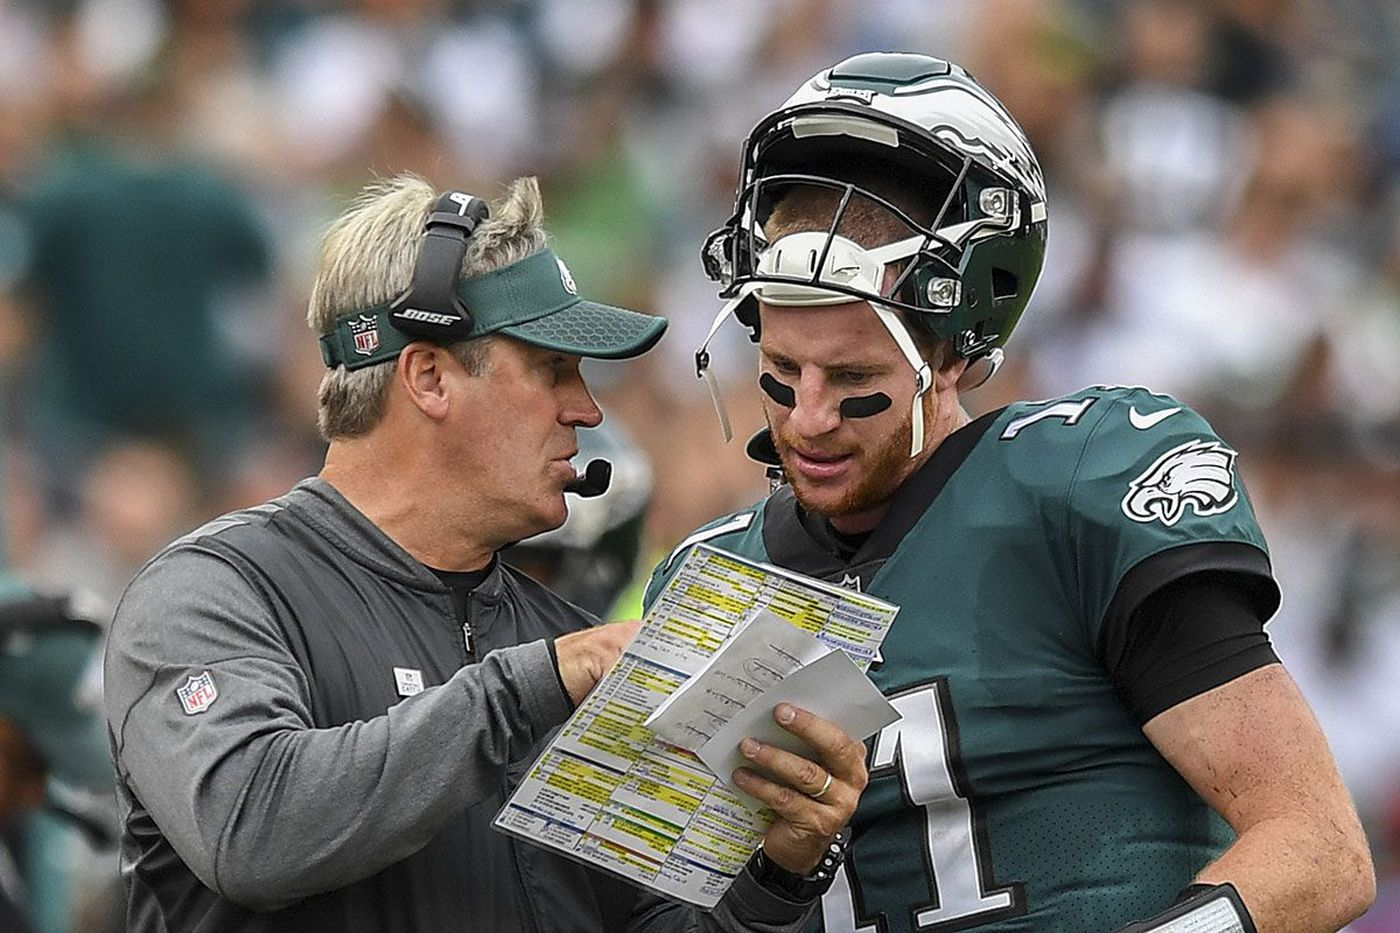 Eagles guard against complacency after 4-1 start | Marcus Hayes